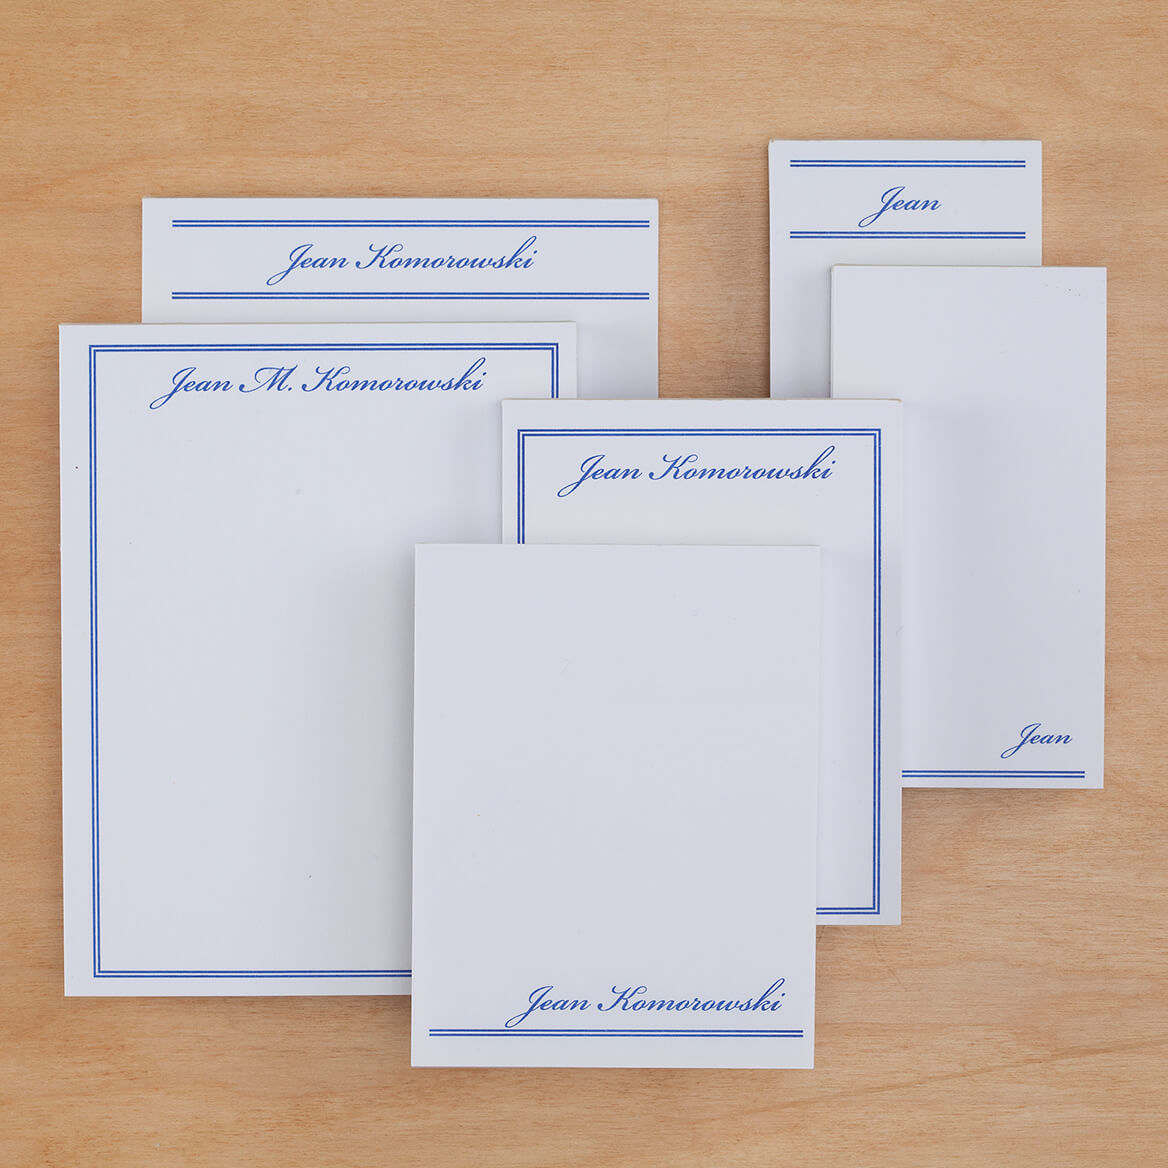 Personalized Classic Basketful of Notepads Refill-346515